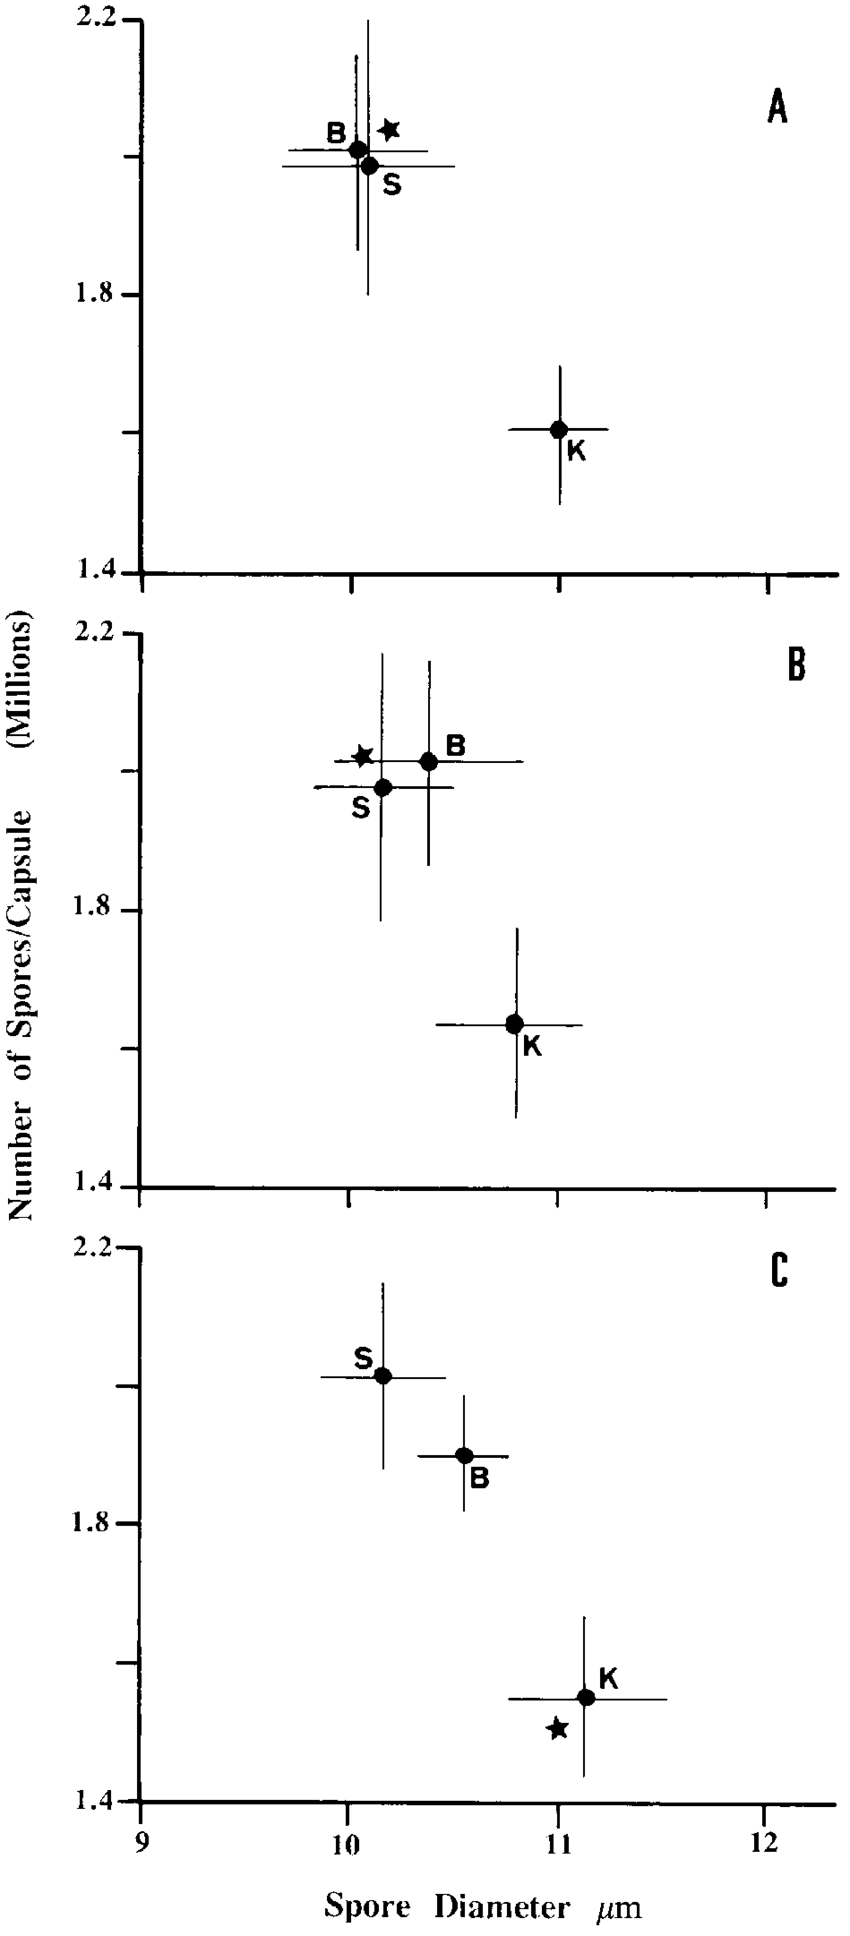 medium resolution of bivariate mean and standard errors for transplants of polytrichum juniperinum on spore diameter and number of